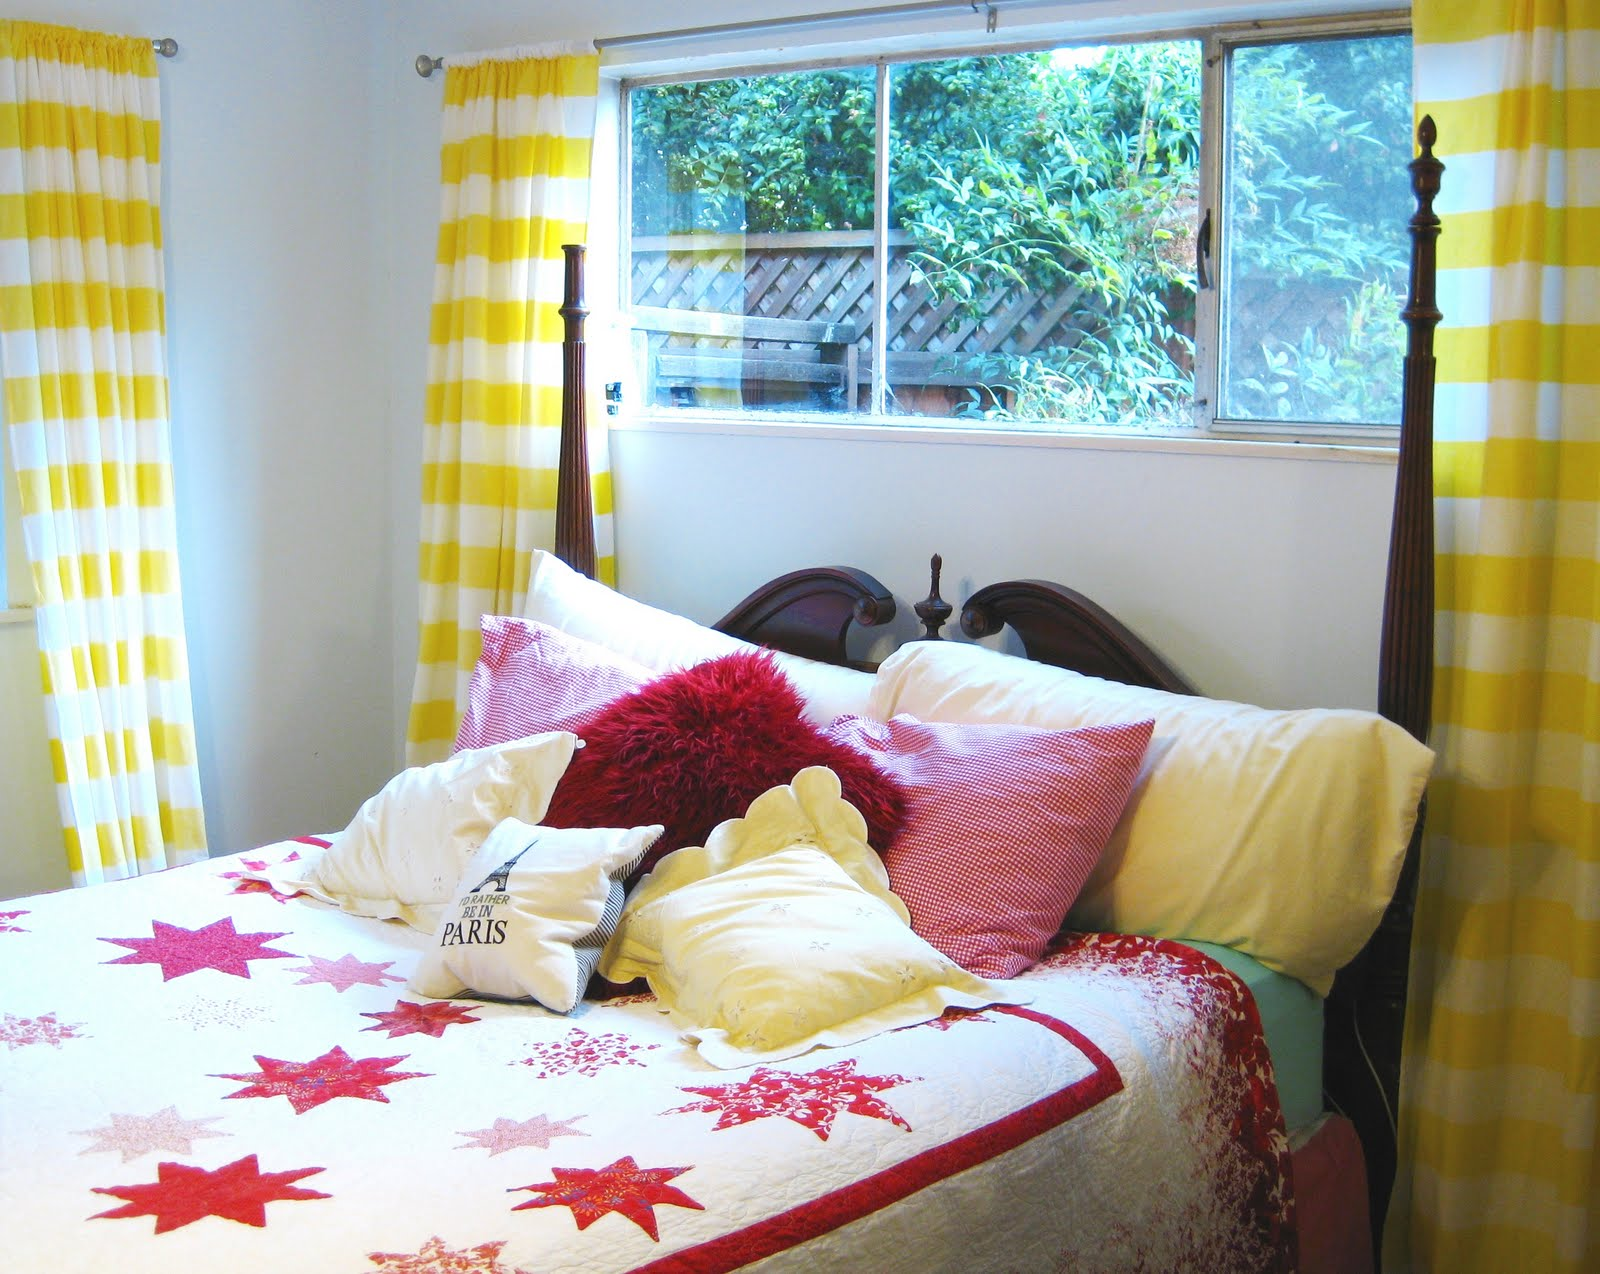 yellow-and-white-striped-curtains-bed-room